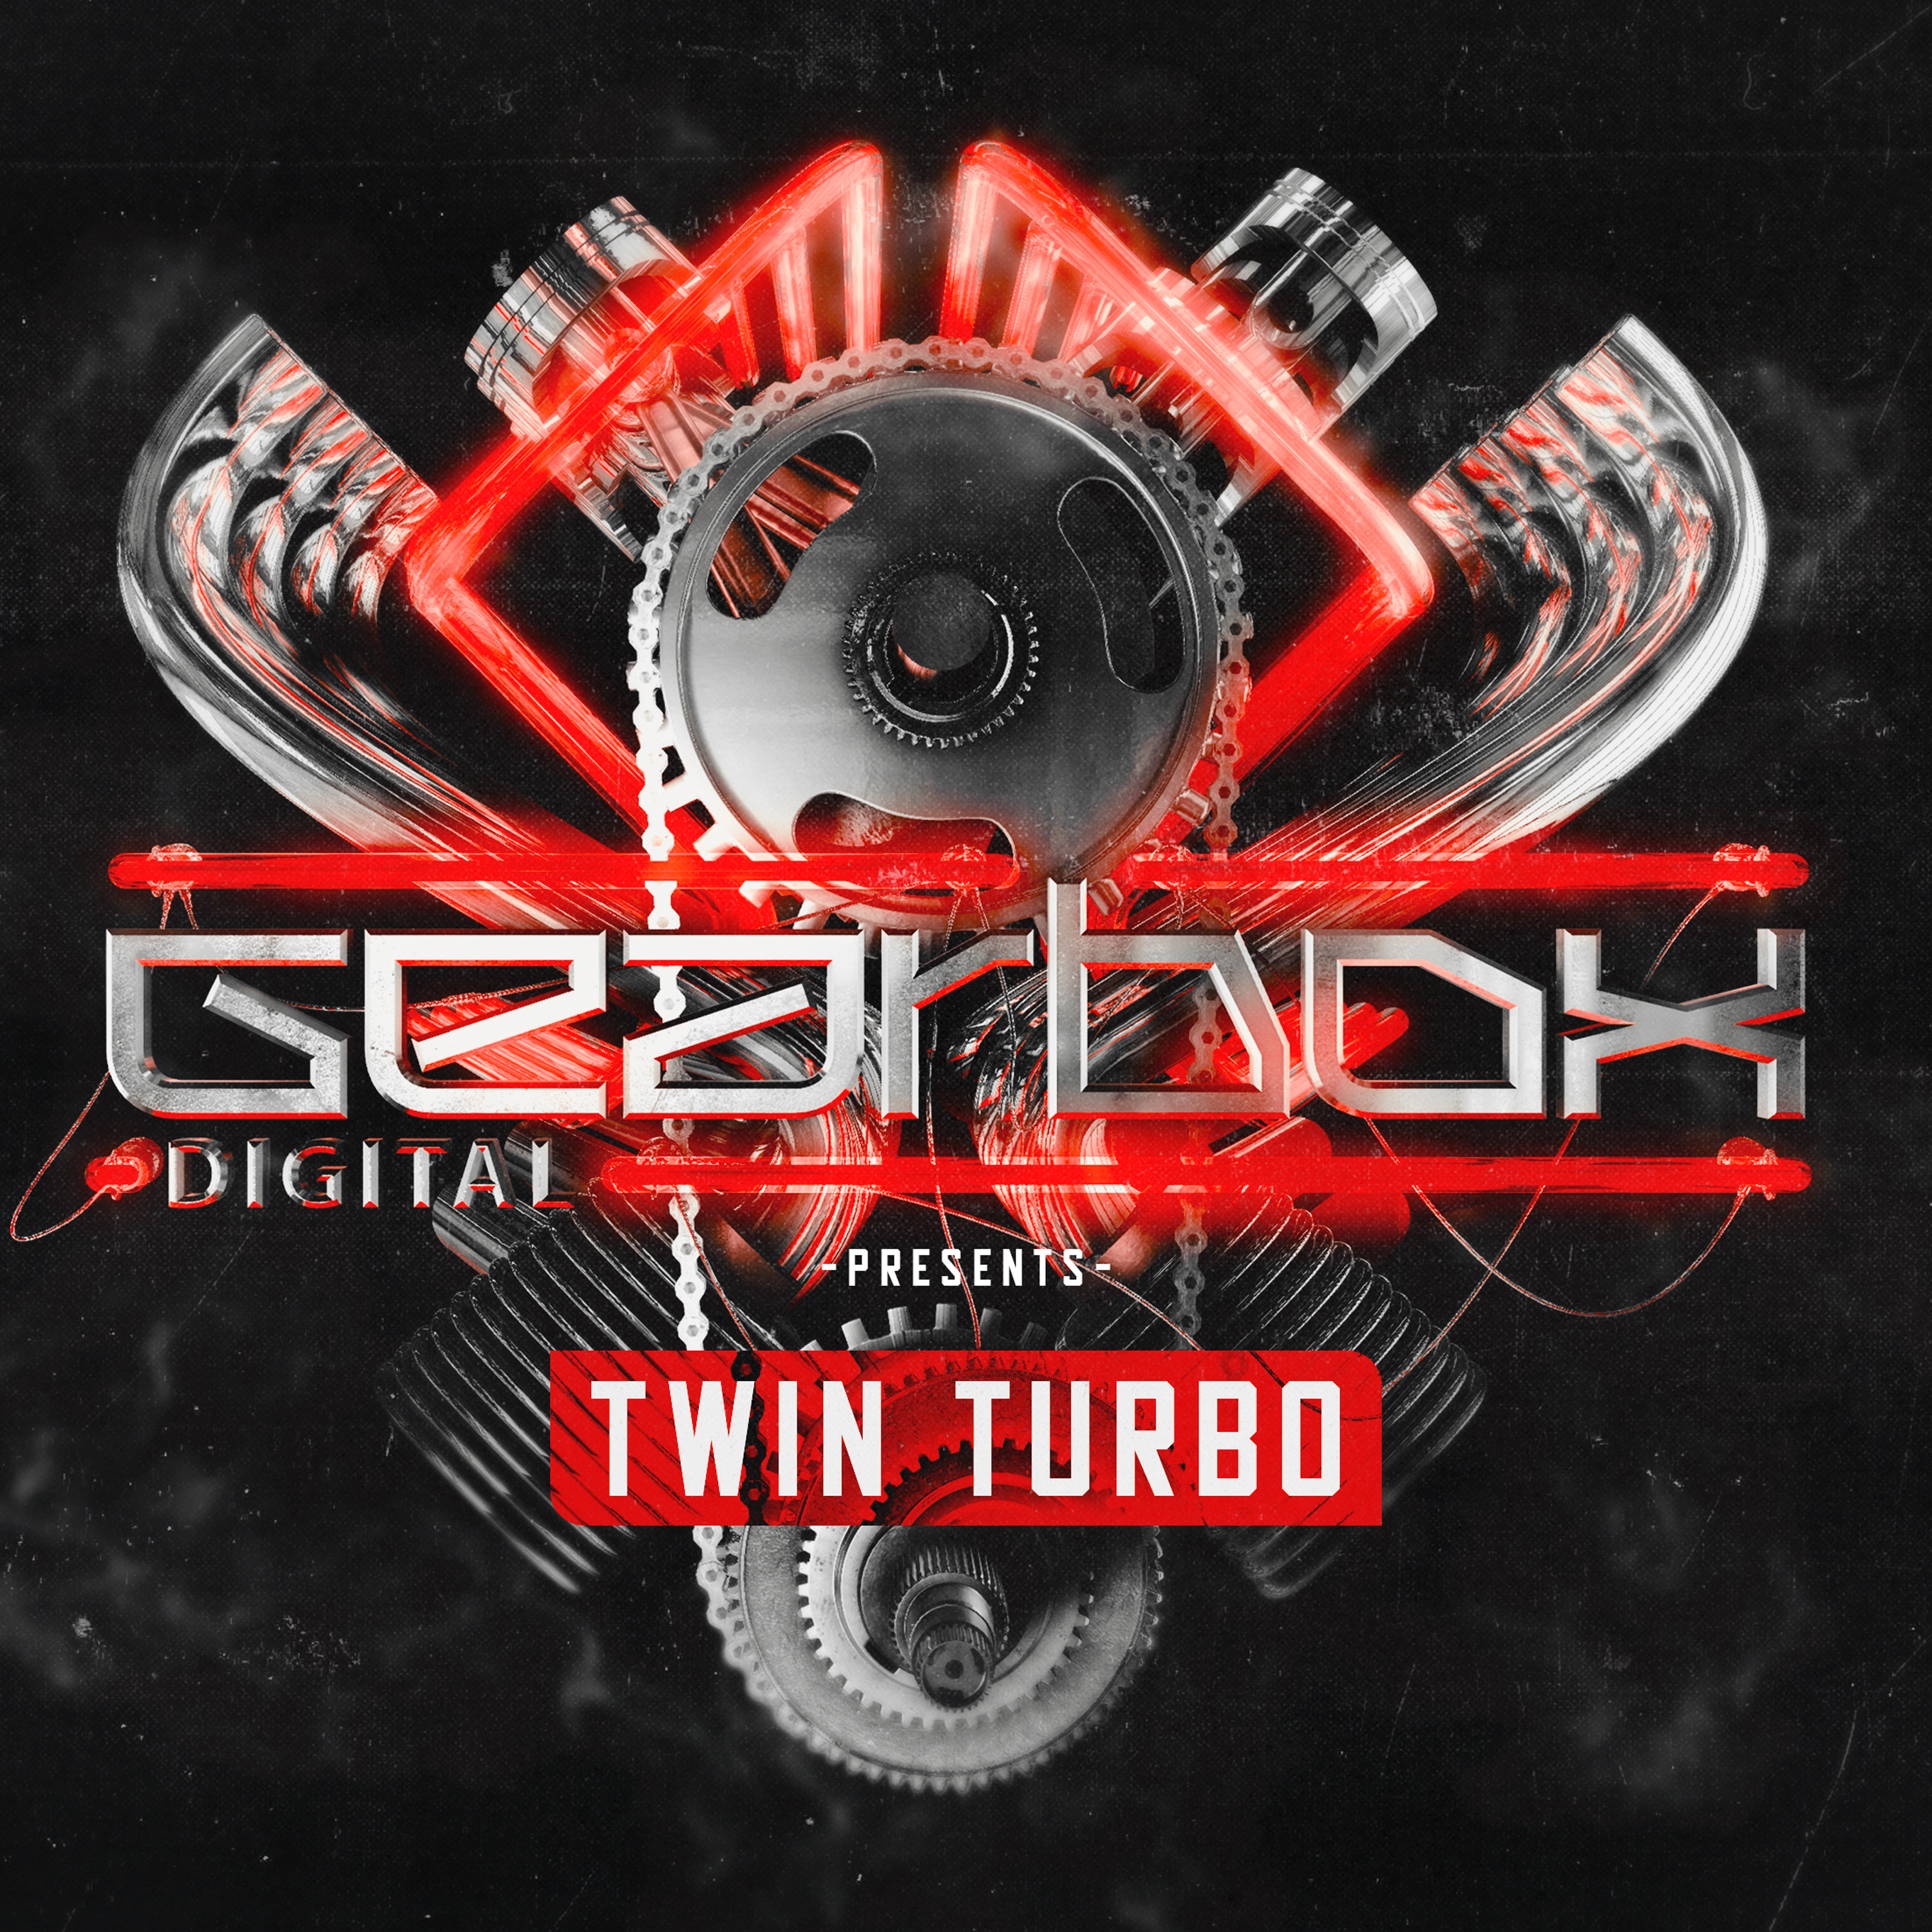 Gearbox Presents Twin Turbo Image